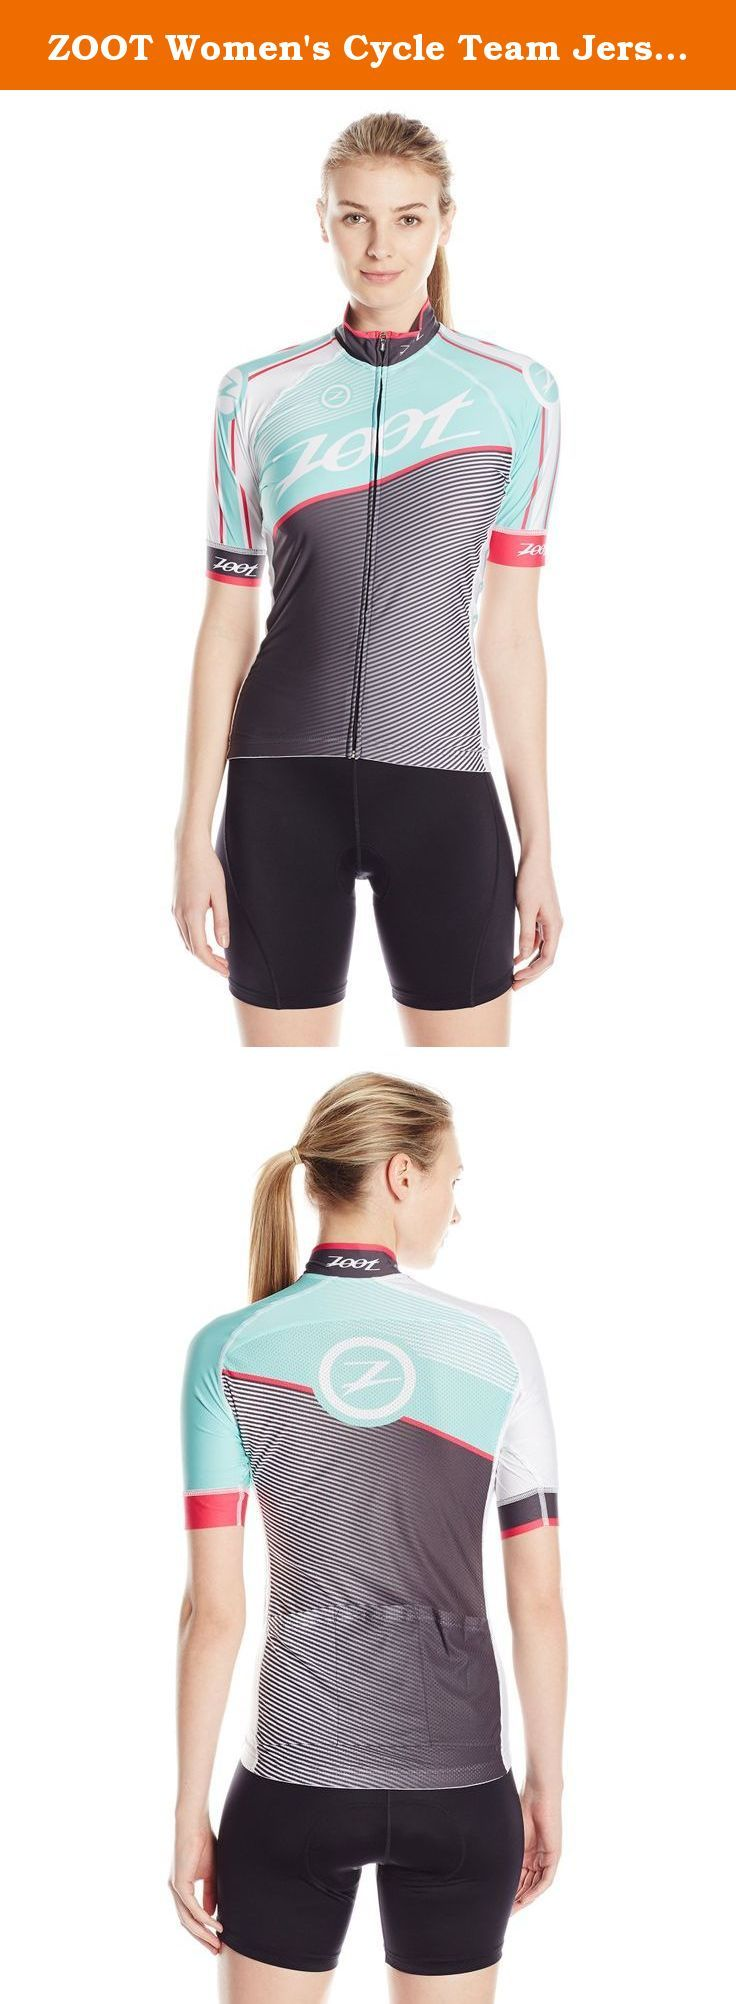 ZOOT Women's Cycle Team Jersey, Aquamarine/Passion Fruit, Medium. Outstanding fit with the benefits of the very best in moisture management, comfort and durability in the new men's cycle team jersey. Perfect anatomic patterning during those long rides makes all the difference when it comes comfort. There are three rear pockets for all of your nutritional storage needs. Enjoy biking in style.